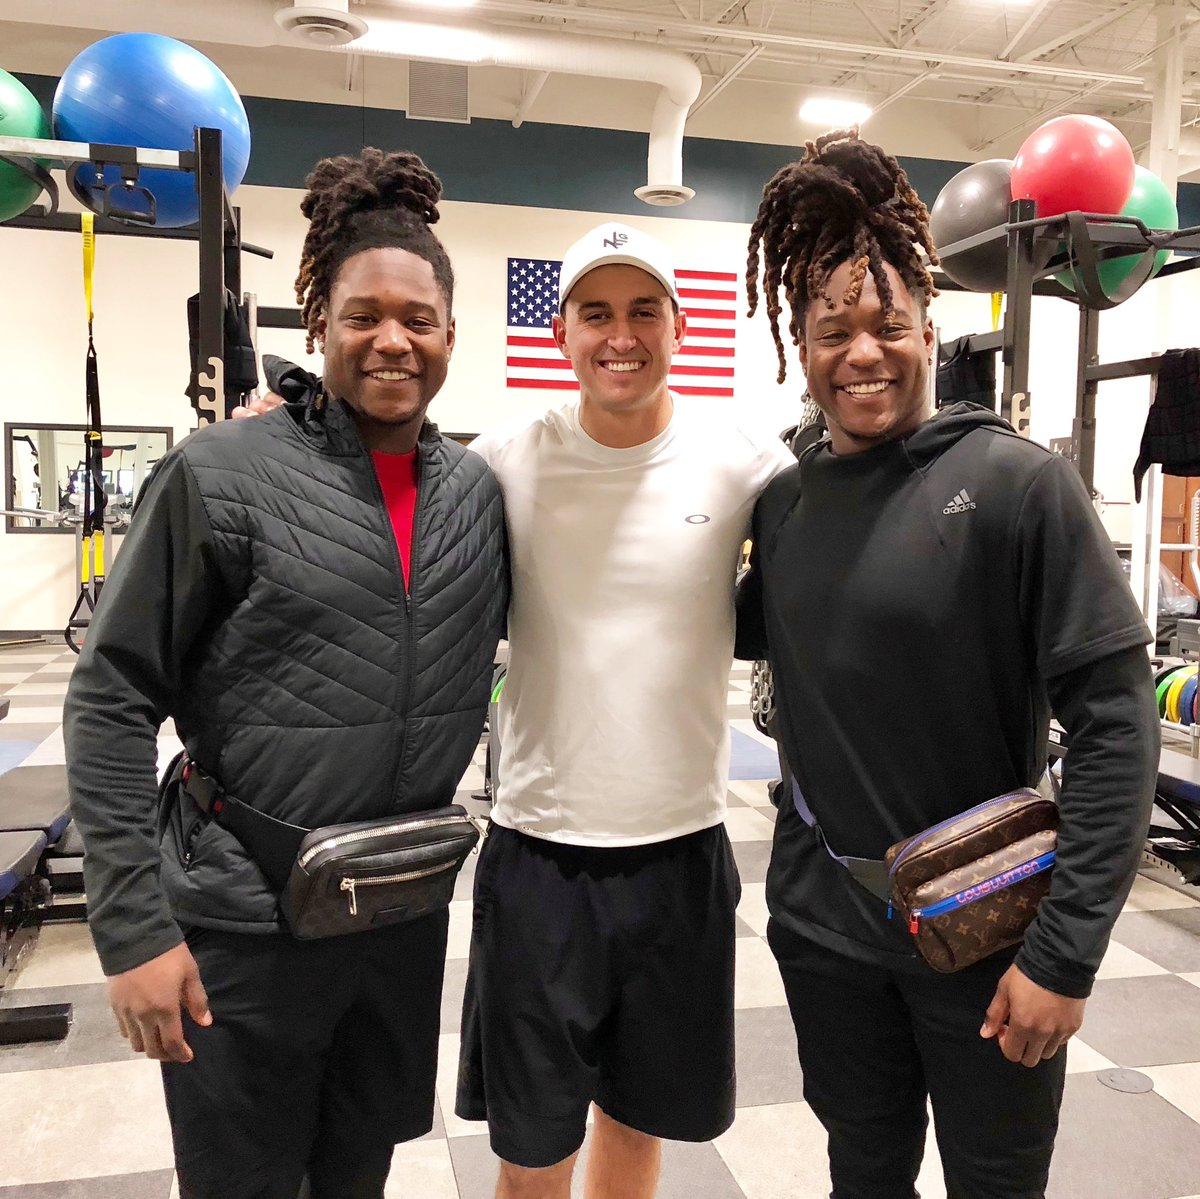 Today I met 2 amazing guys, that as brothers have inspired the world, and 1 has overcome immense odds to make it to the top of their sport! @Shaquemgriffin & @ShaquillG it's an honor to meet you both, enjoy your week @definingsports, they're the best of the best!